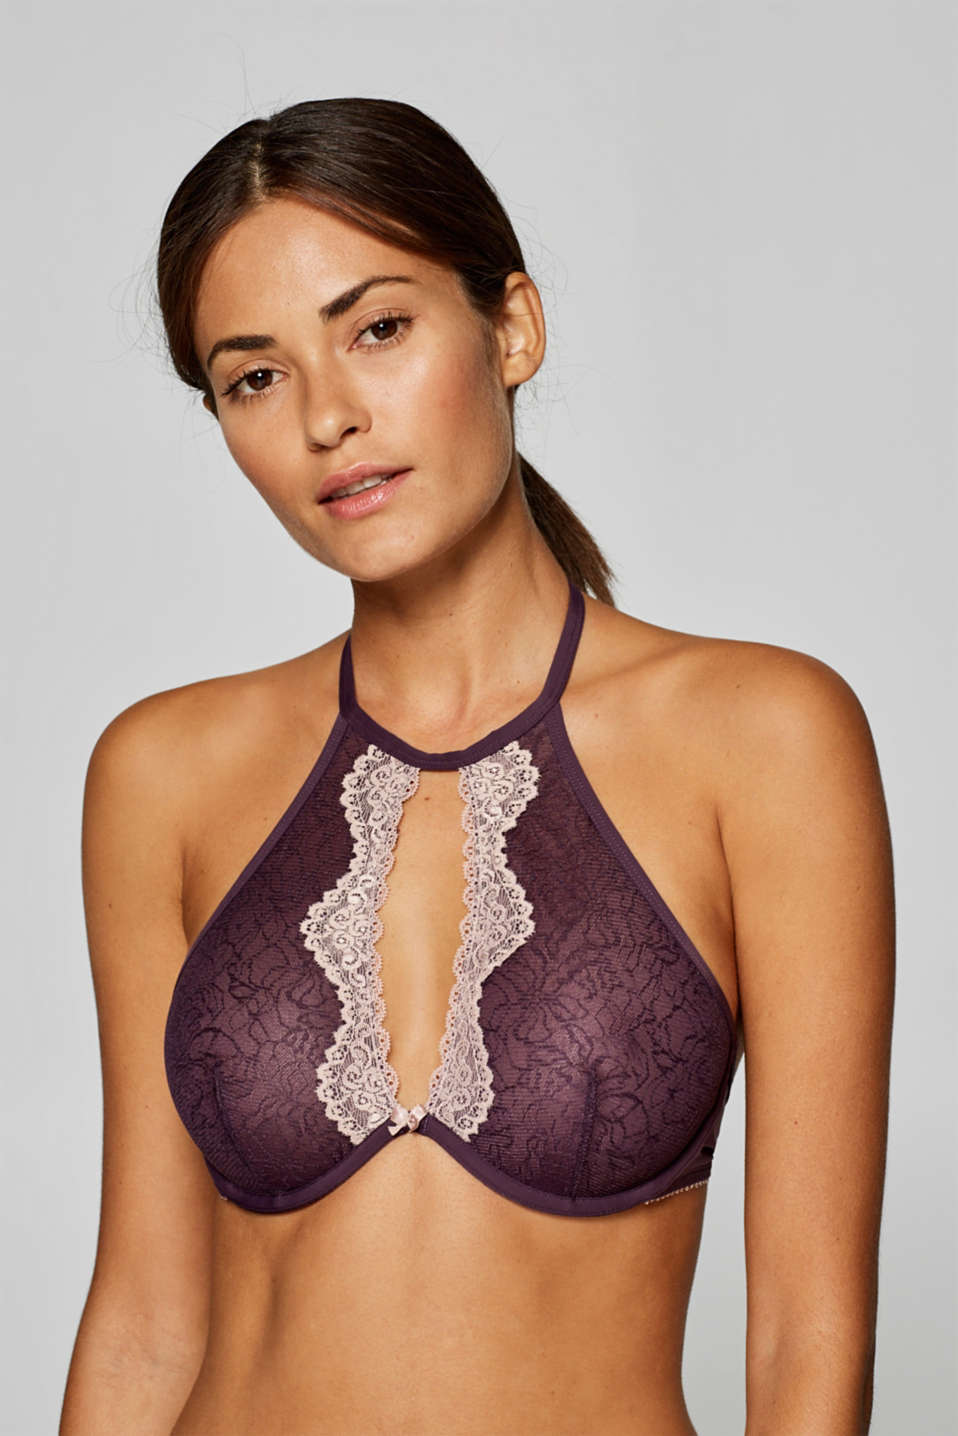 597485656db1 edc - Unpadded underwire bra with two kinds of lace at our Online Shop